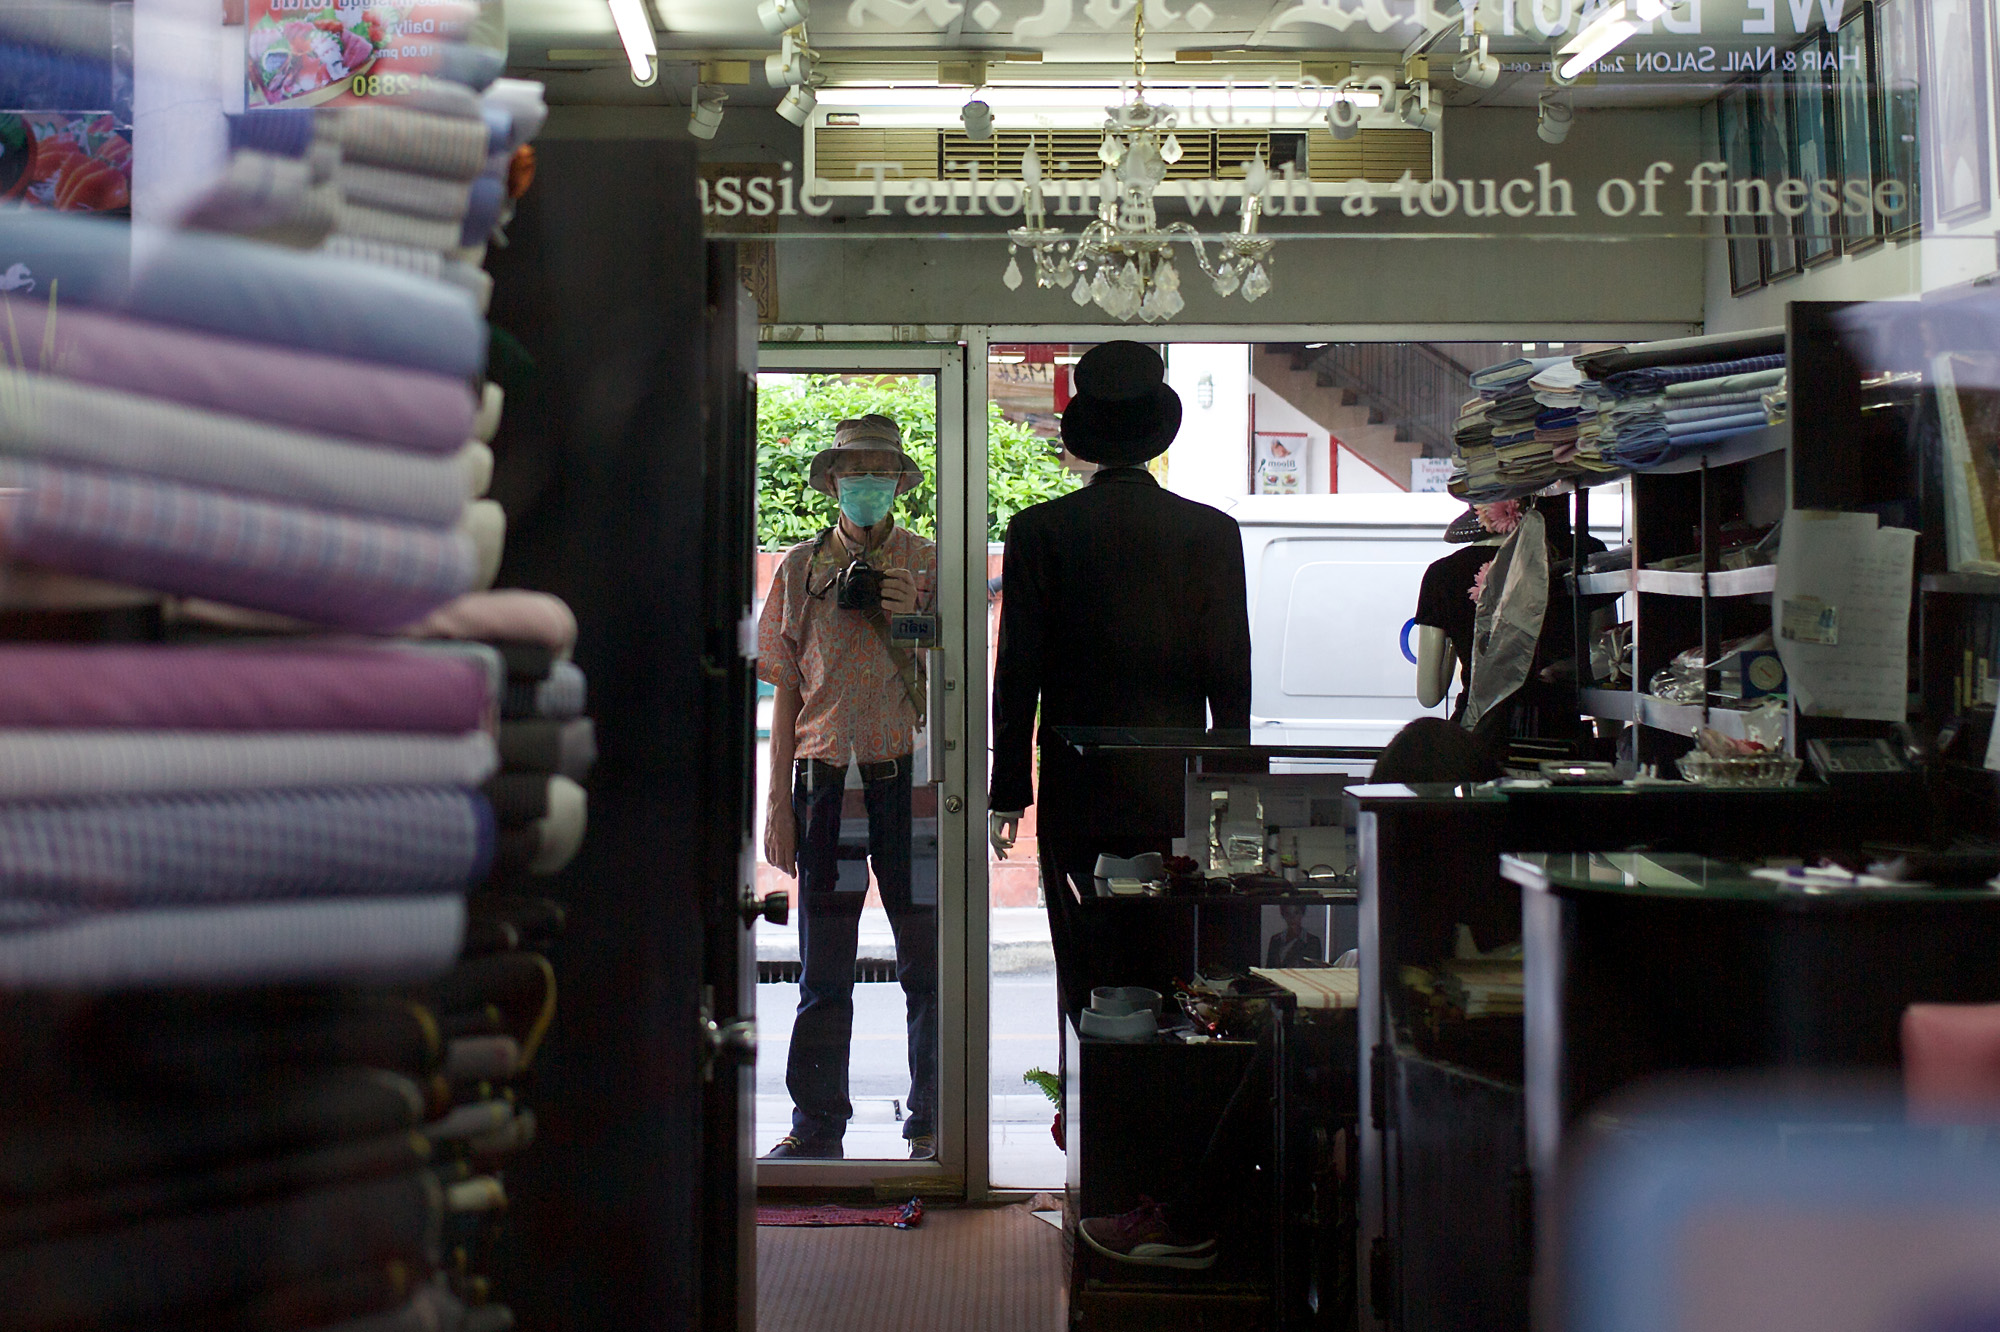 the photographer, looking into a tailor's shop, reflected in a mirror